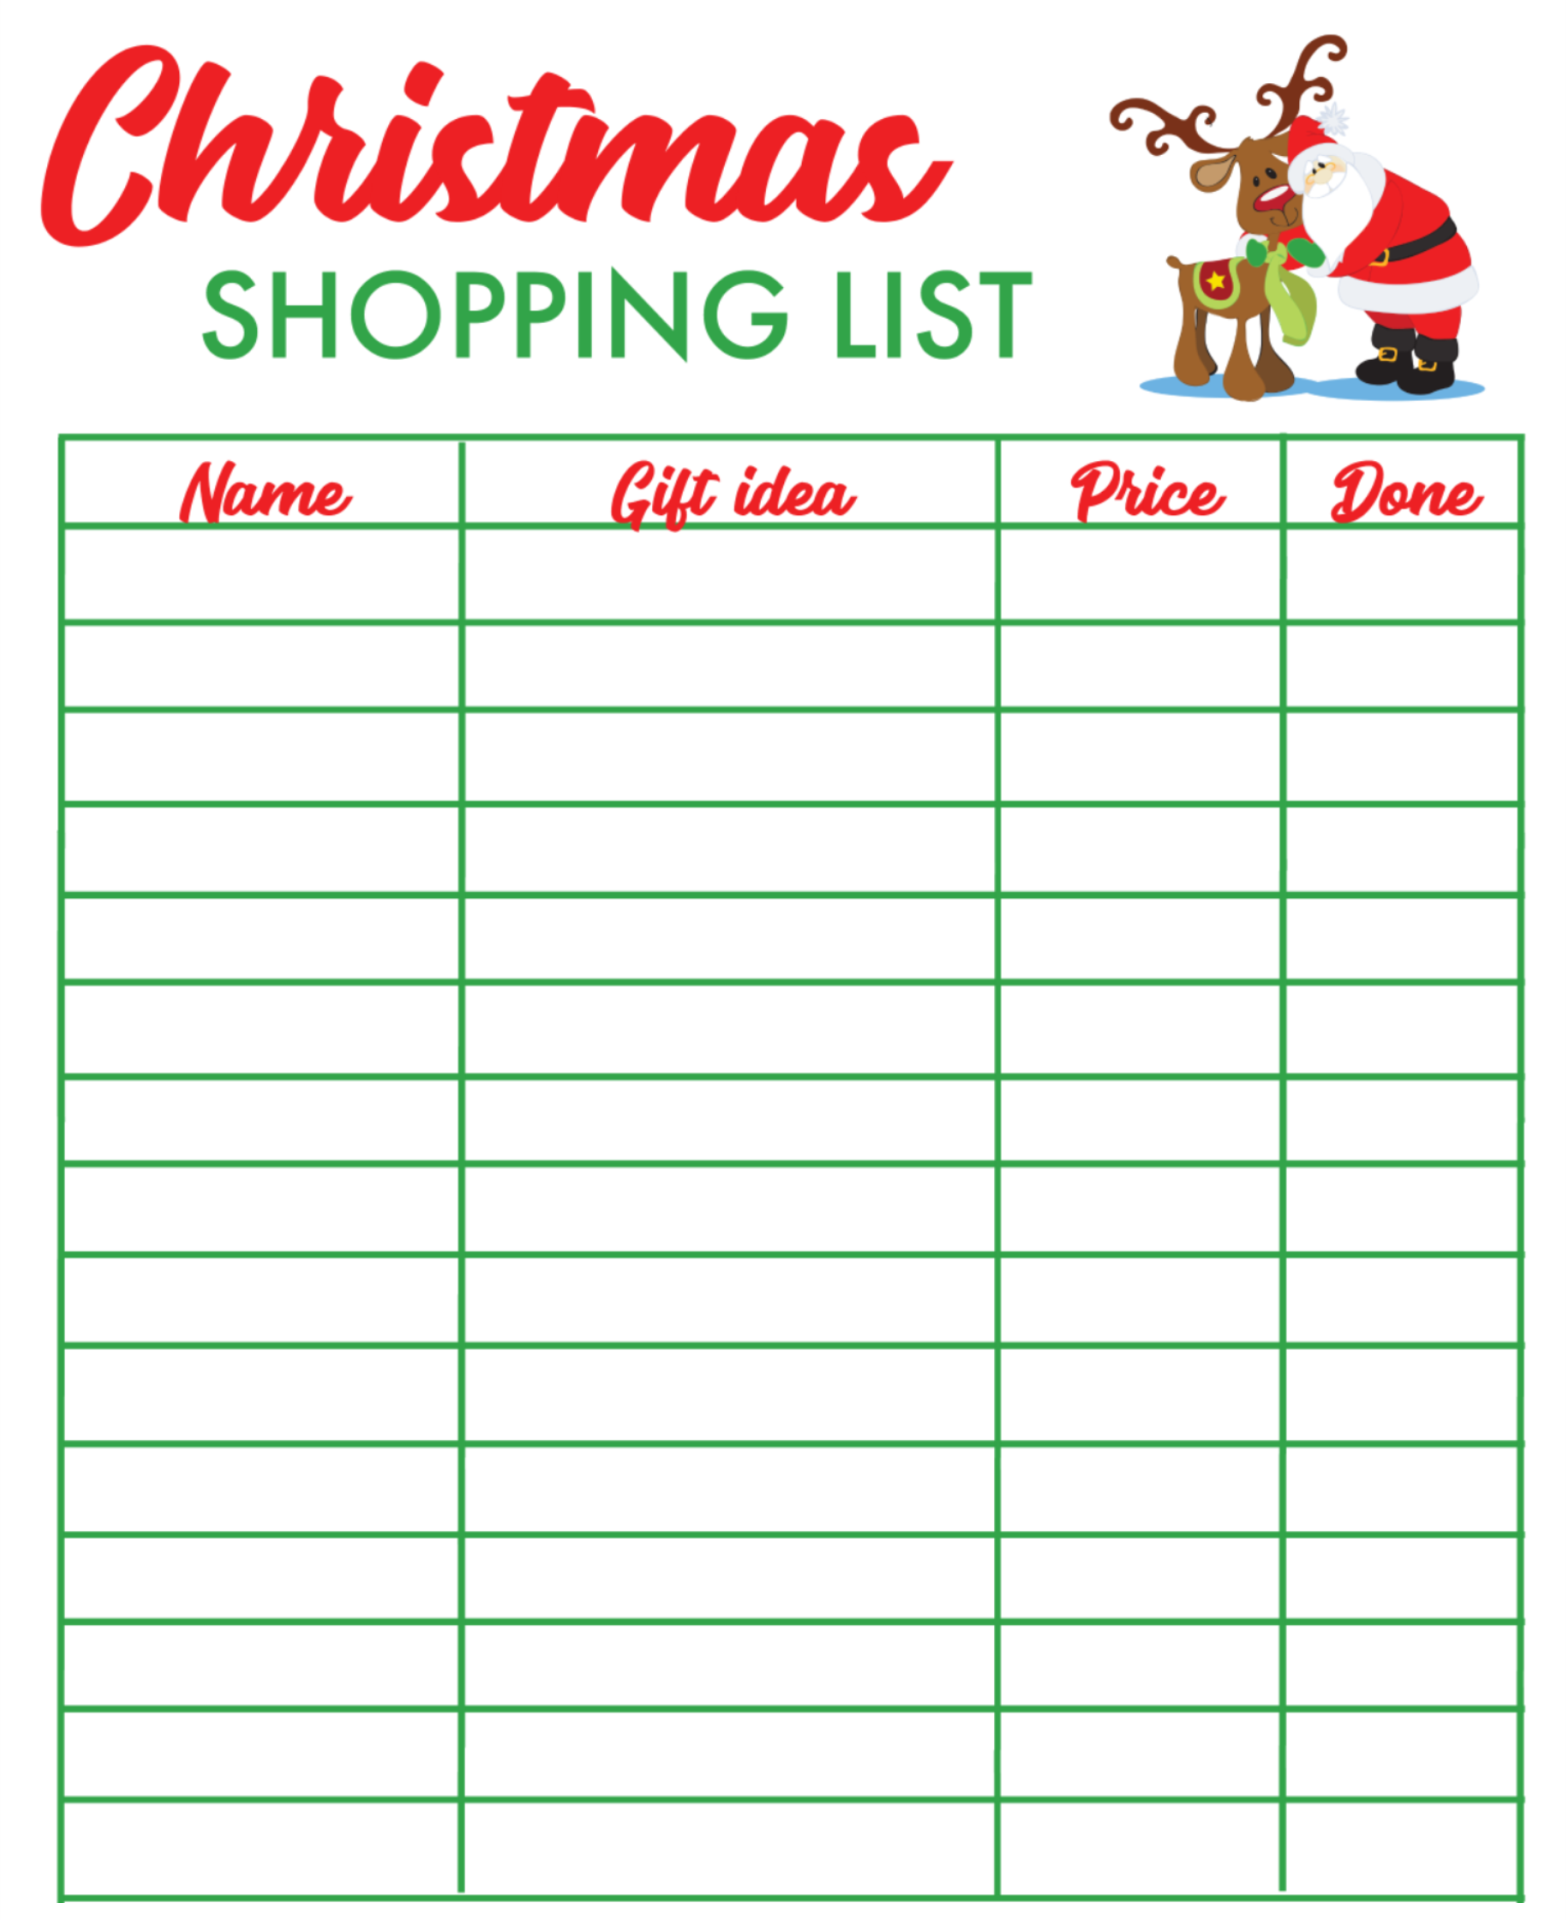 6 Images of Printable Christmas Shopping List